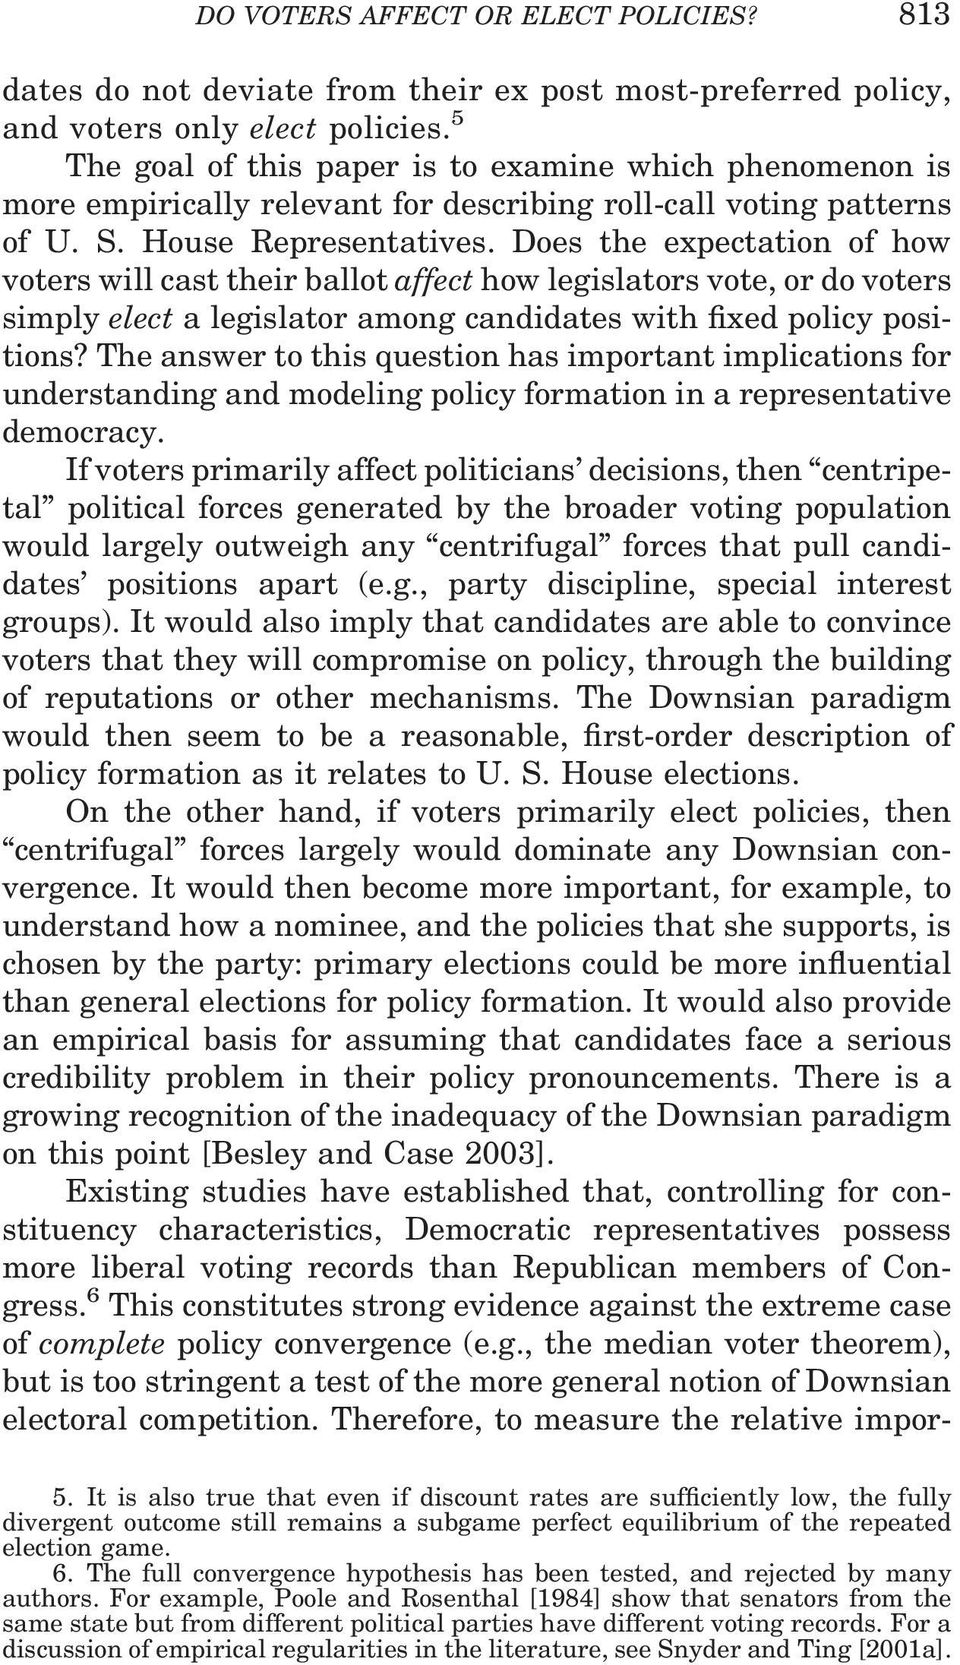 Does the expectation of how voters will cast their ballot affect how legislators vote, or do voters simply elect a legislator among candidates with fixed policy positions?